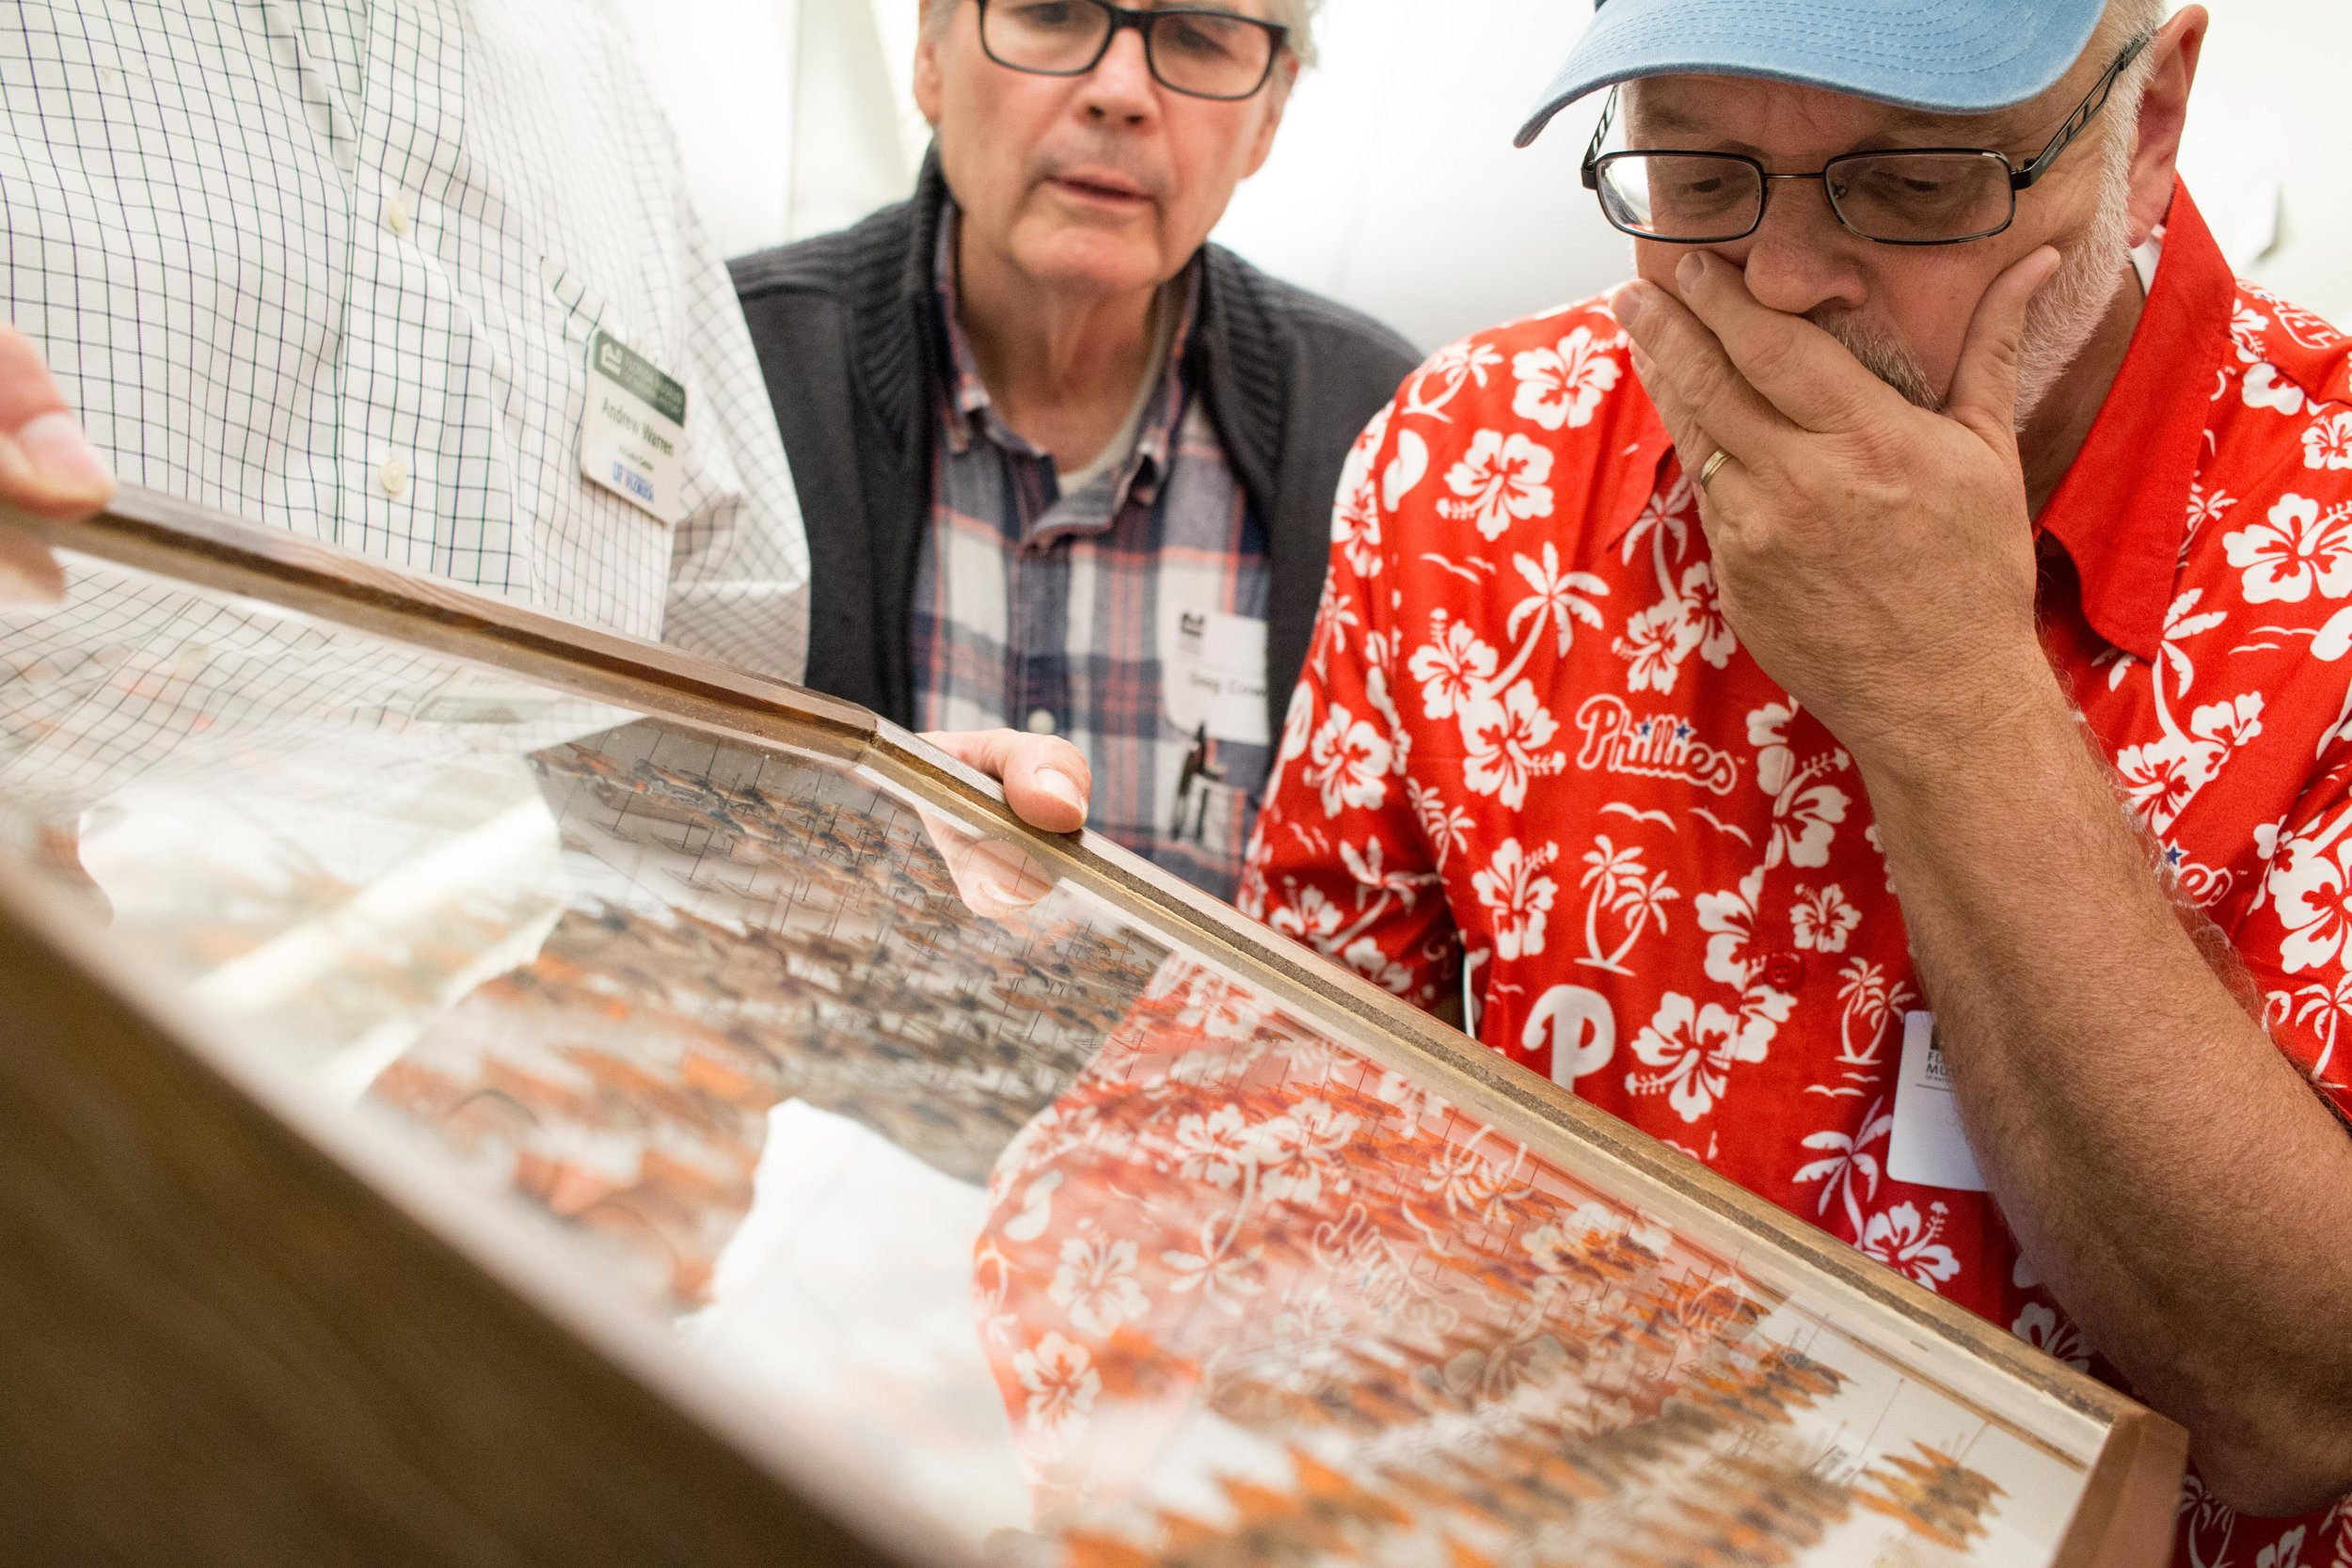 Dr. Jon Gelhaus and Mr. Greg Cowper of Entomology Department at the Academy of Natural Sciences examine a drawer of butterfly specimens at the McGuire Center for Lepidoptera & Biodiversity at the University of Florida.